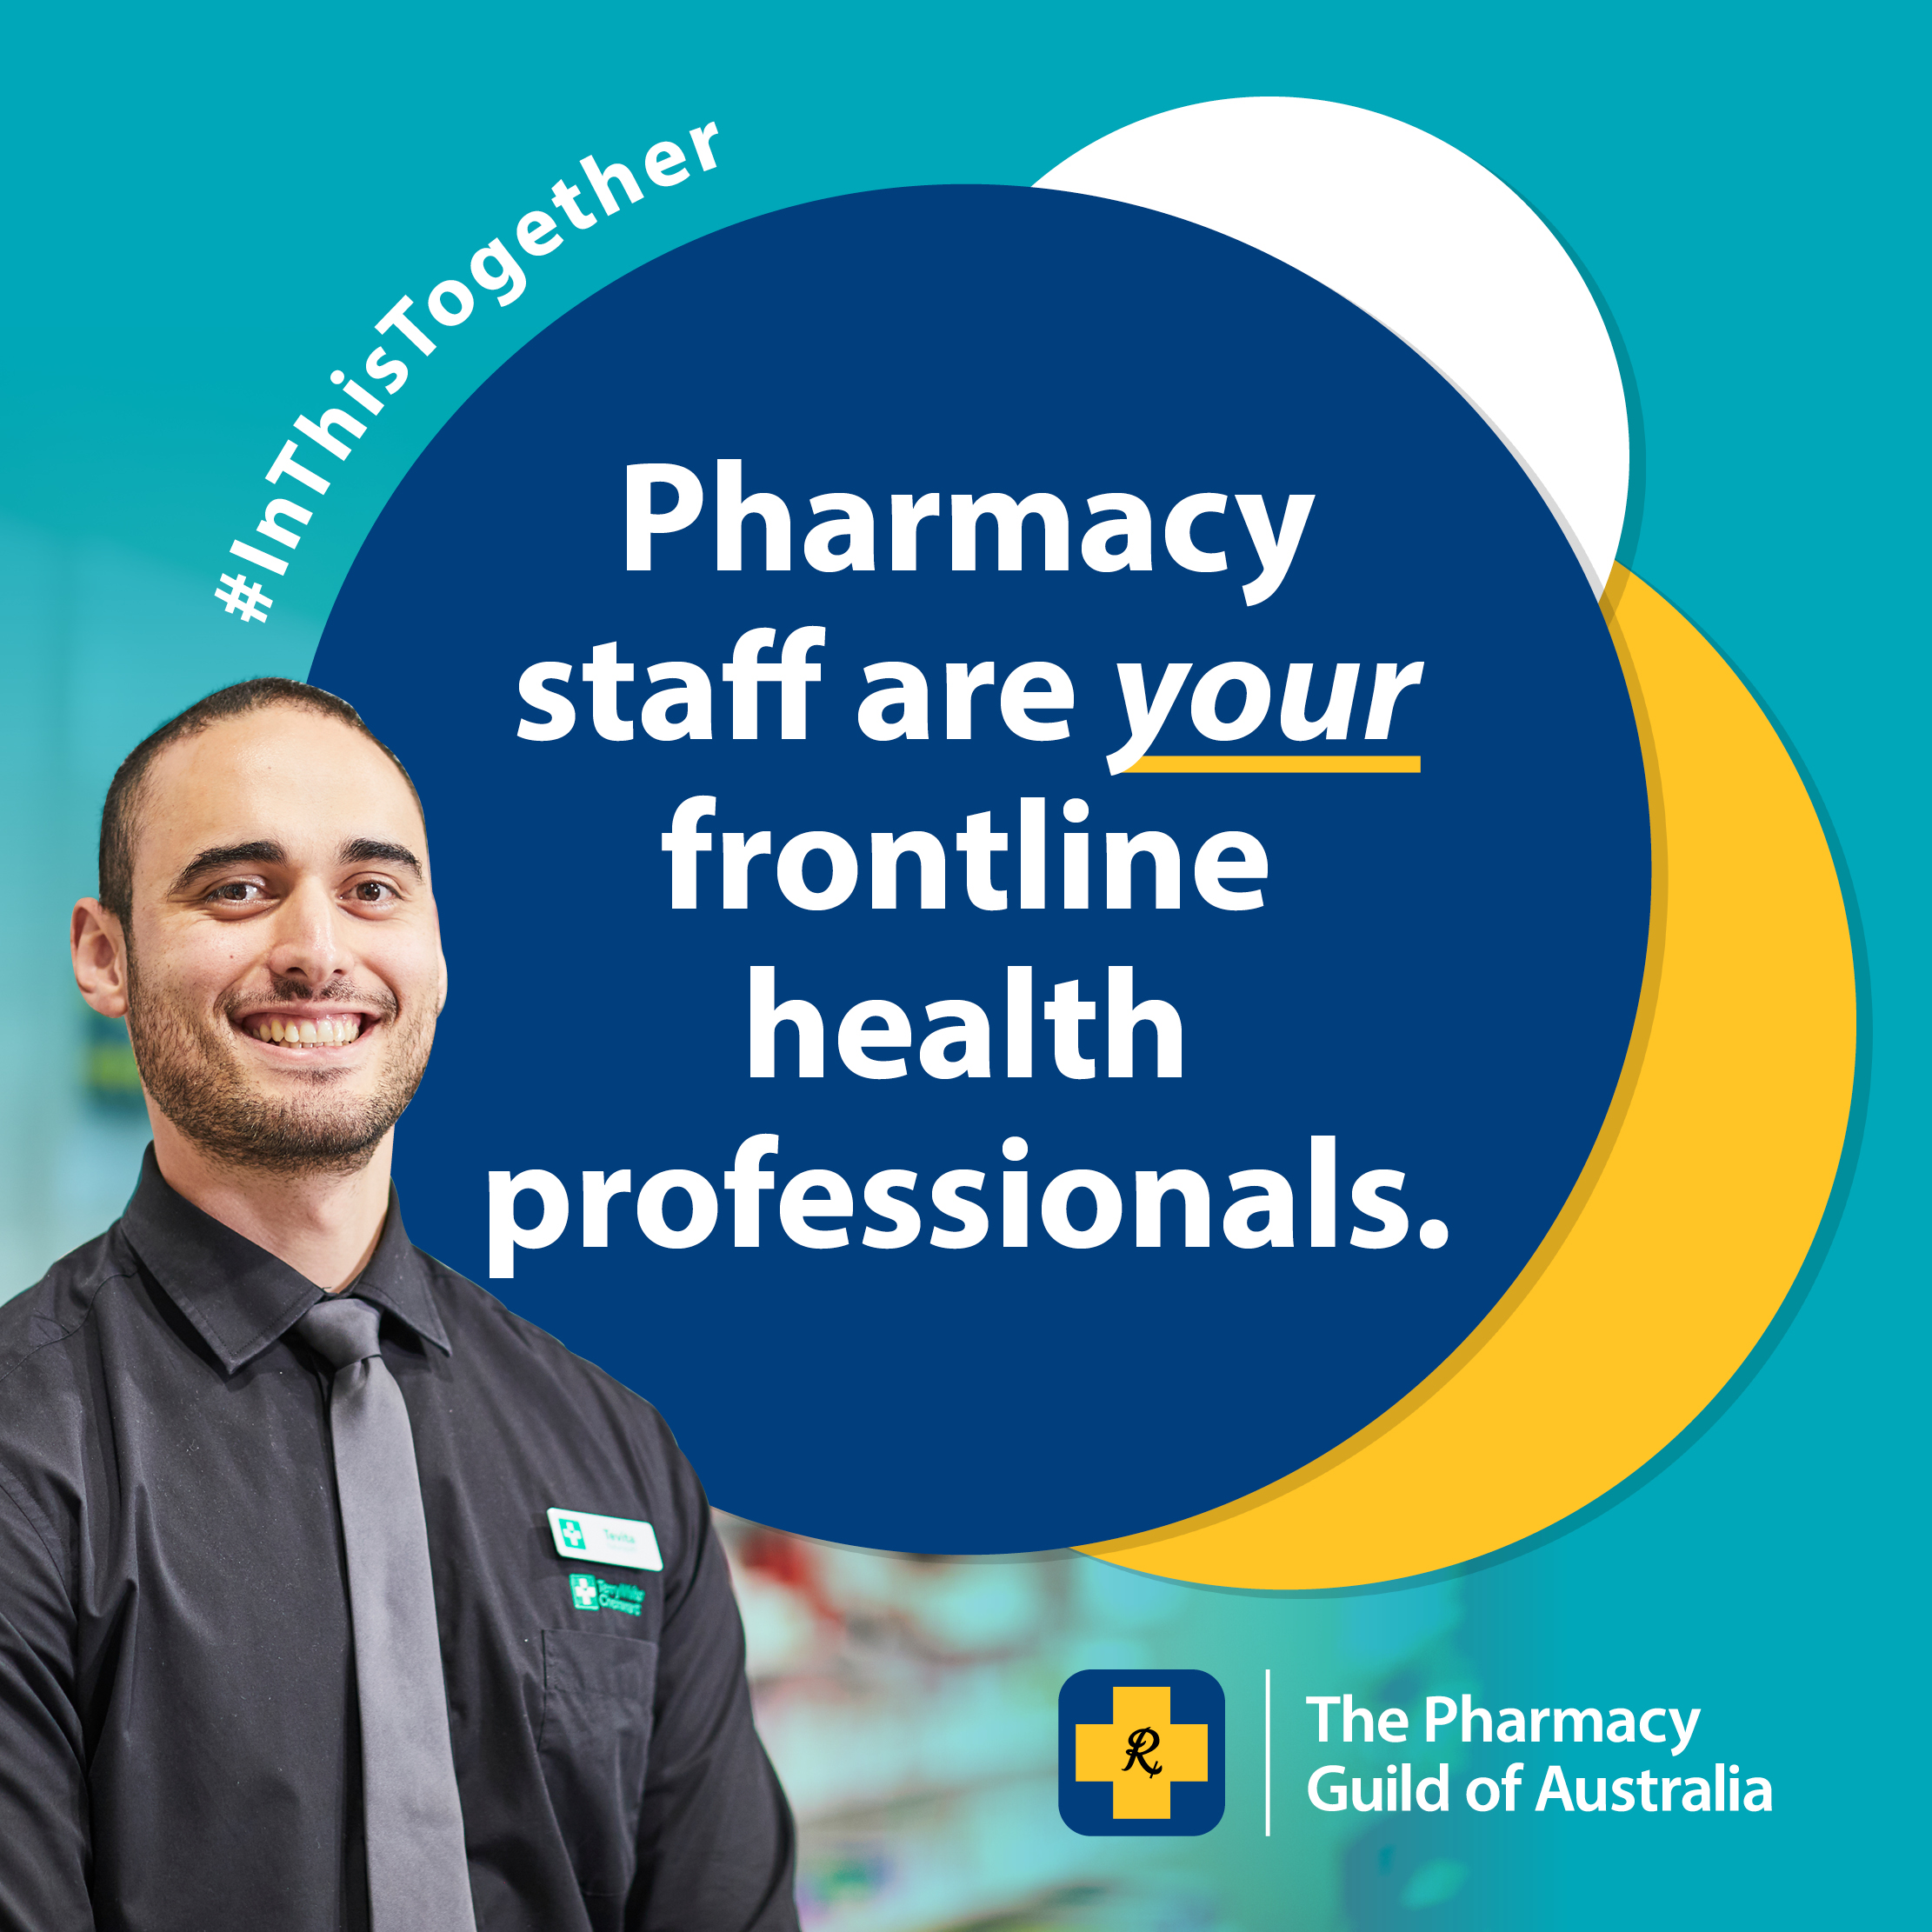 Social Media Tile 5 - Pharmacy Staff Are Frontline Health Professionals